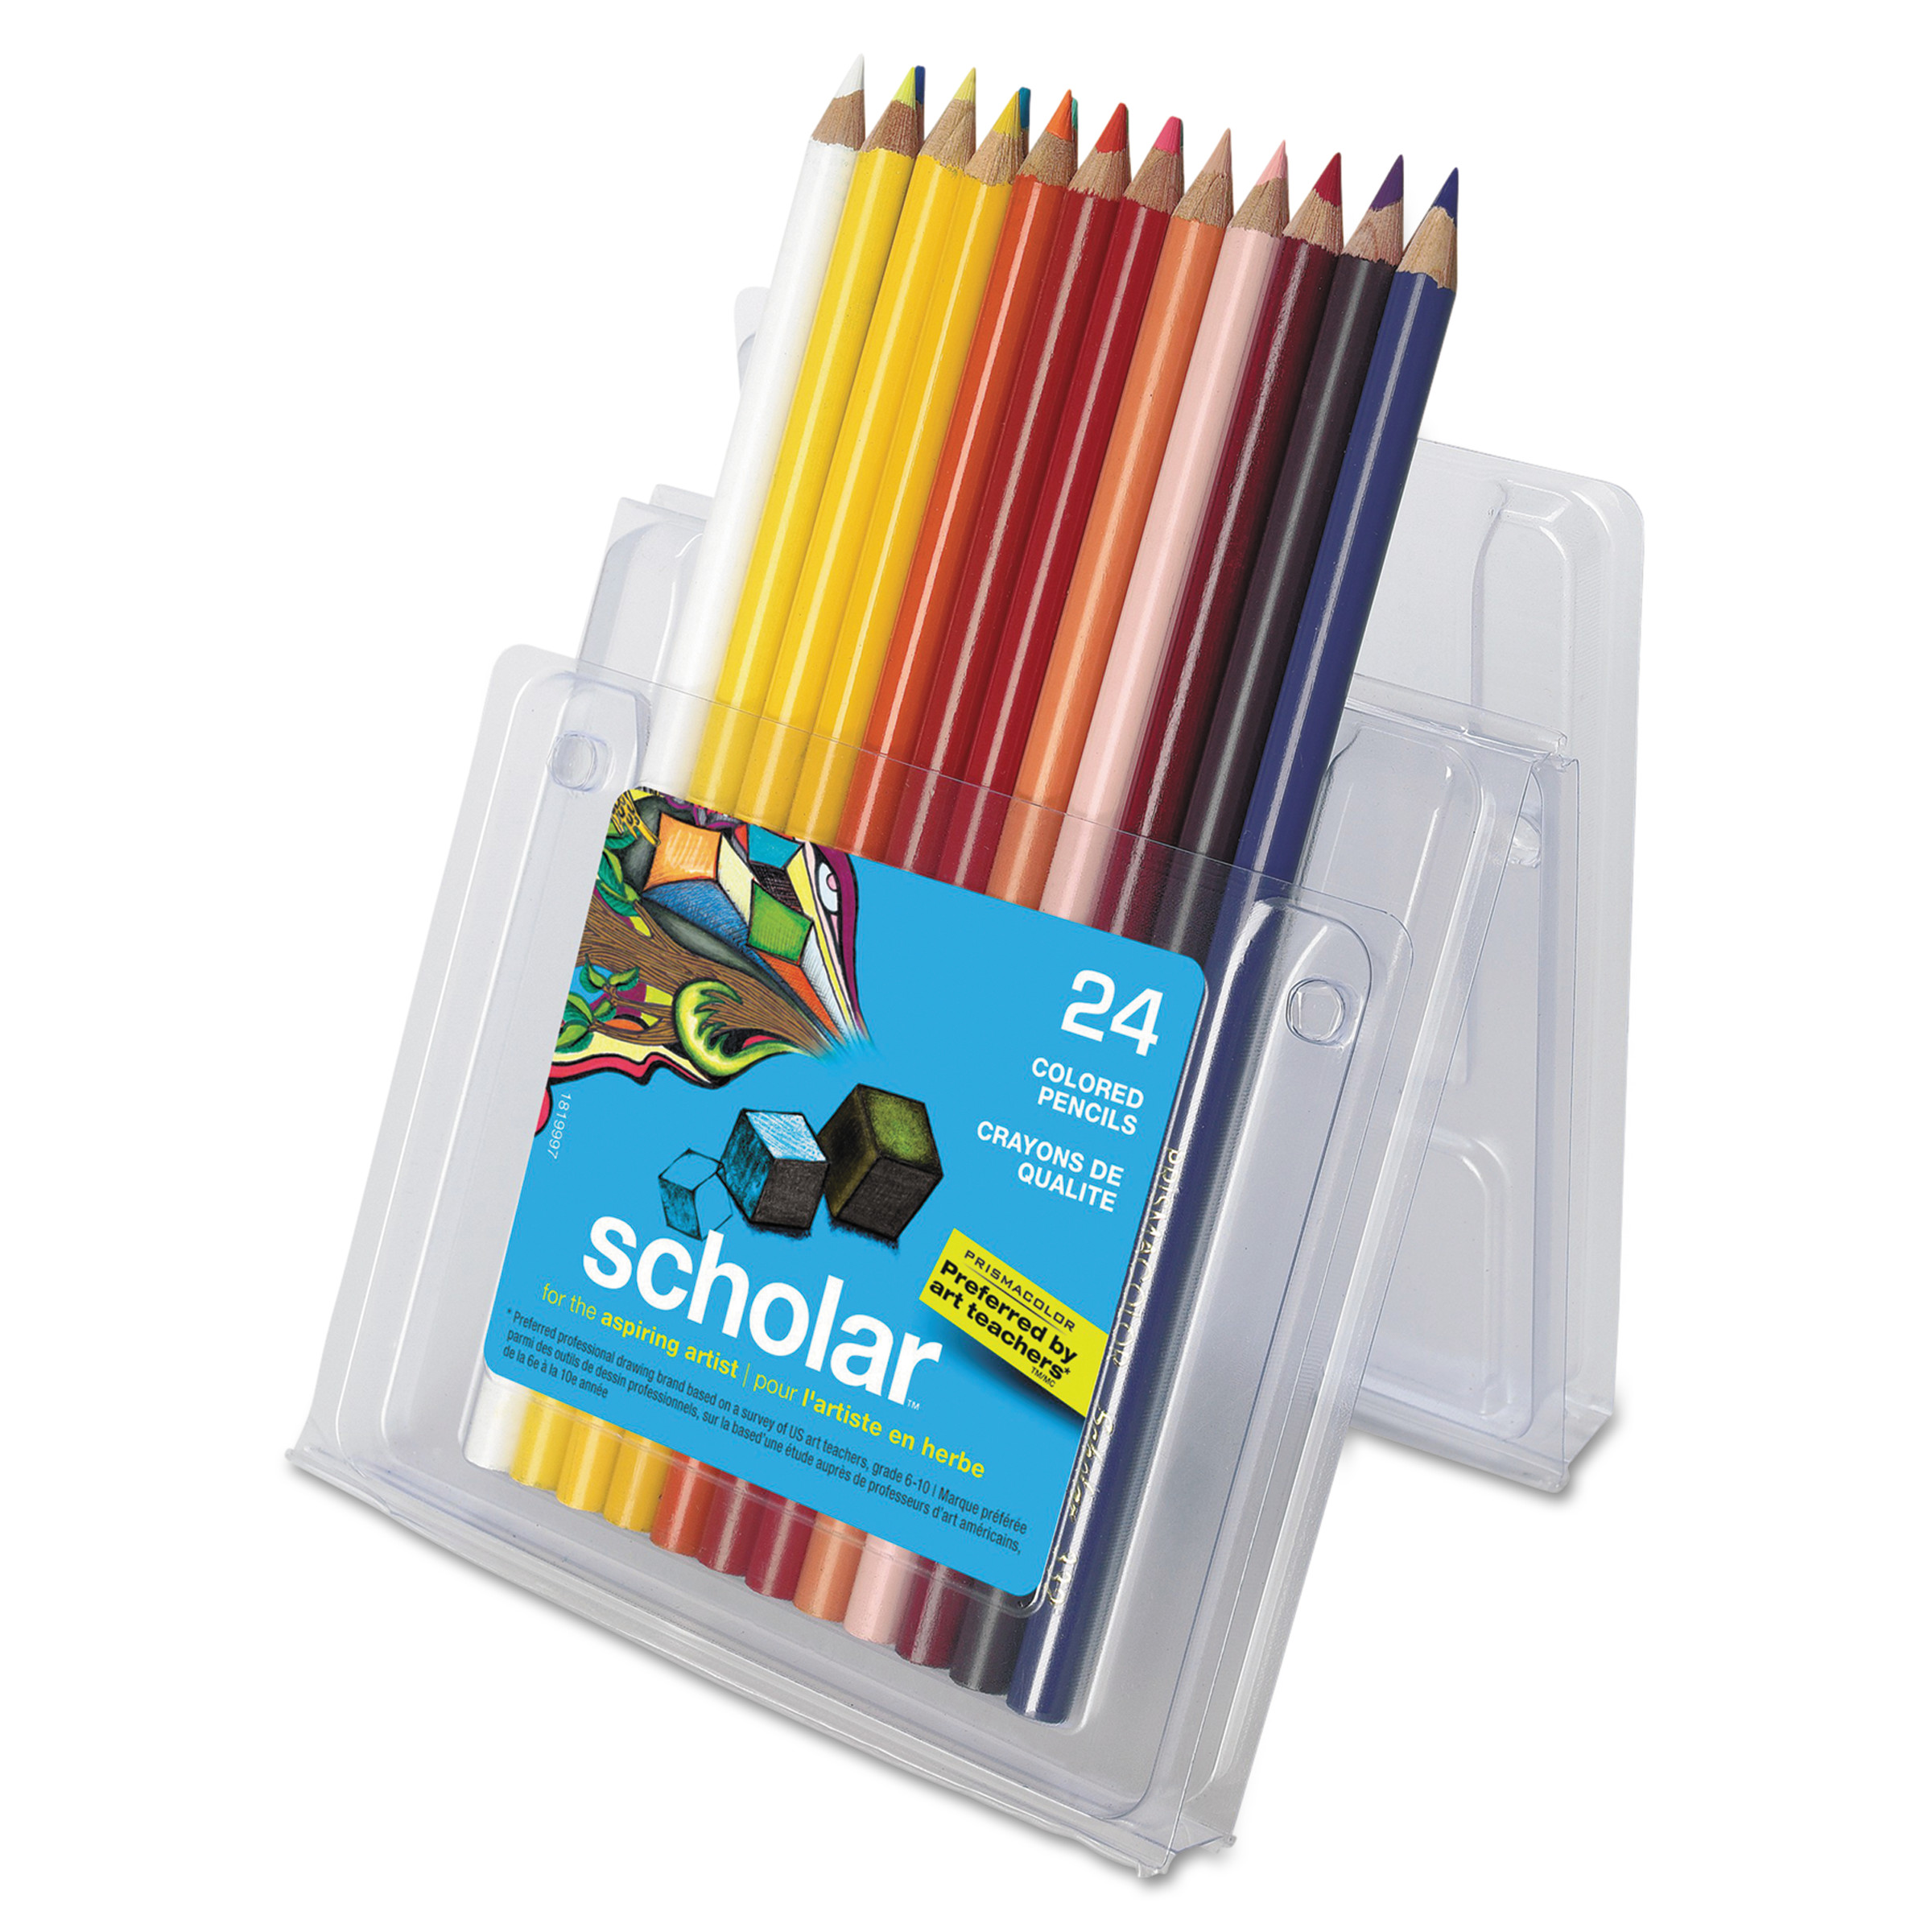 Prismacolor Scholar Colored Pencils, 24 Assorted Colors